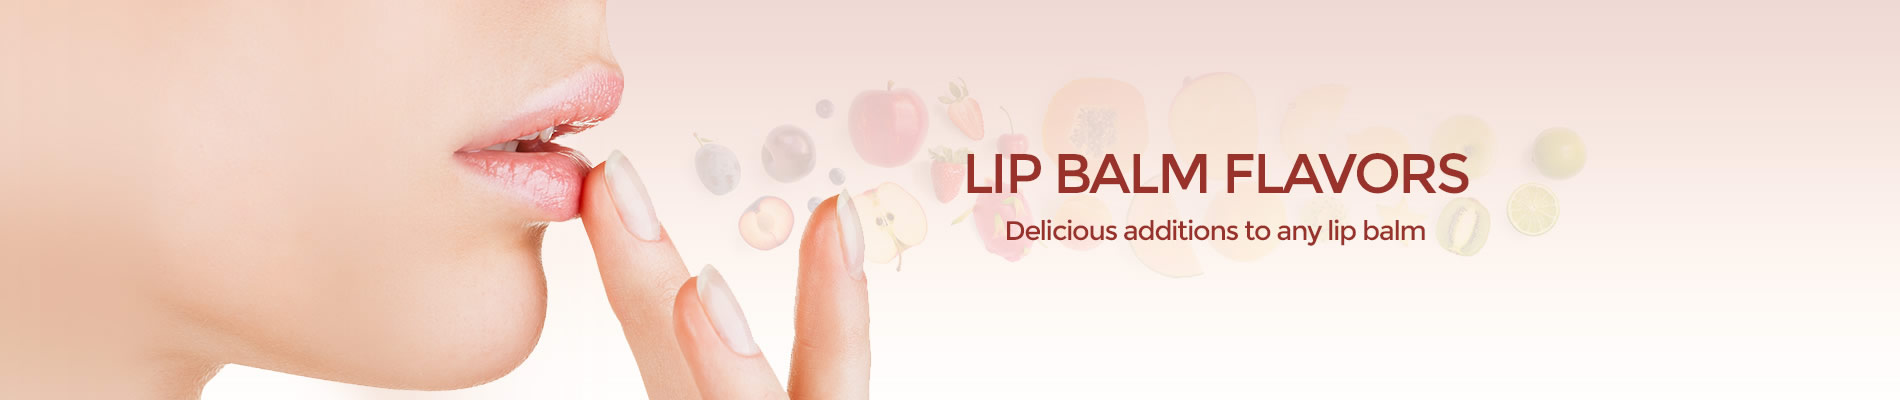 Lip Balm Flavors from New Directions Aromatics